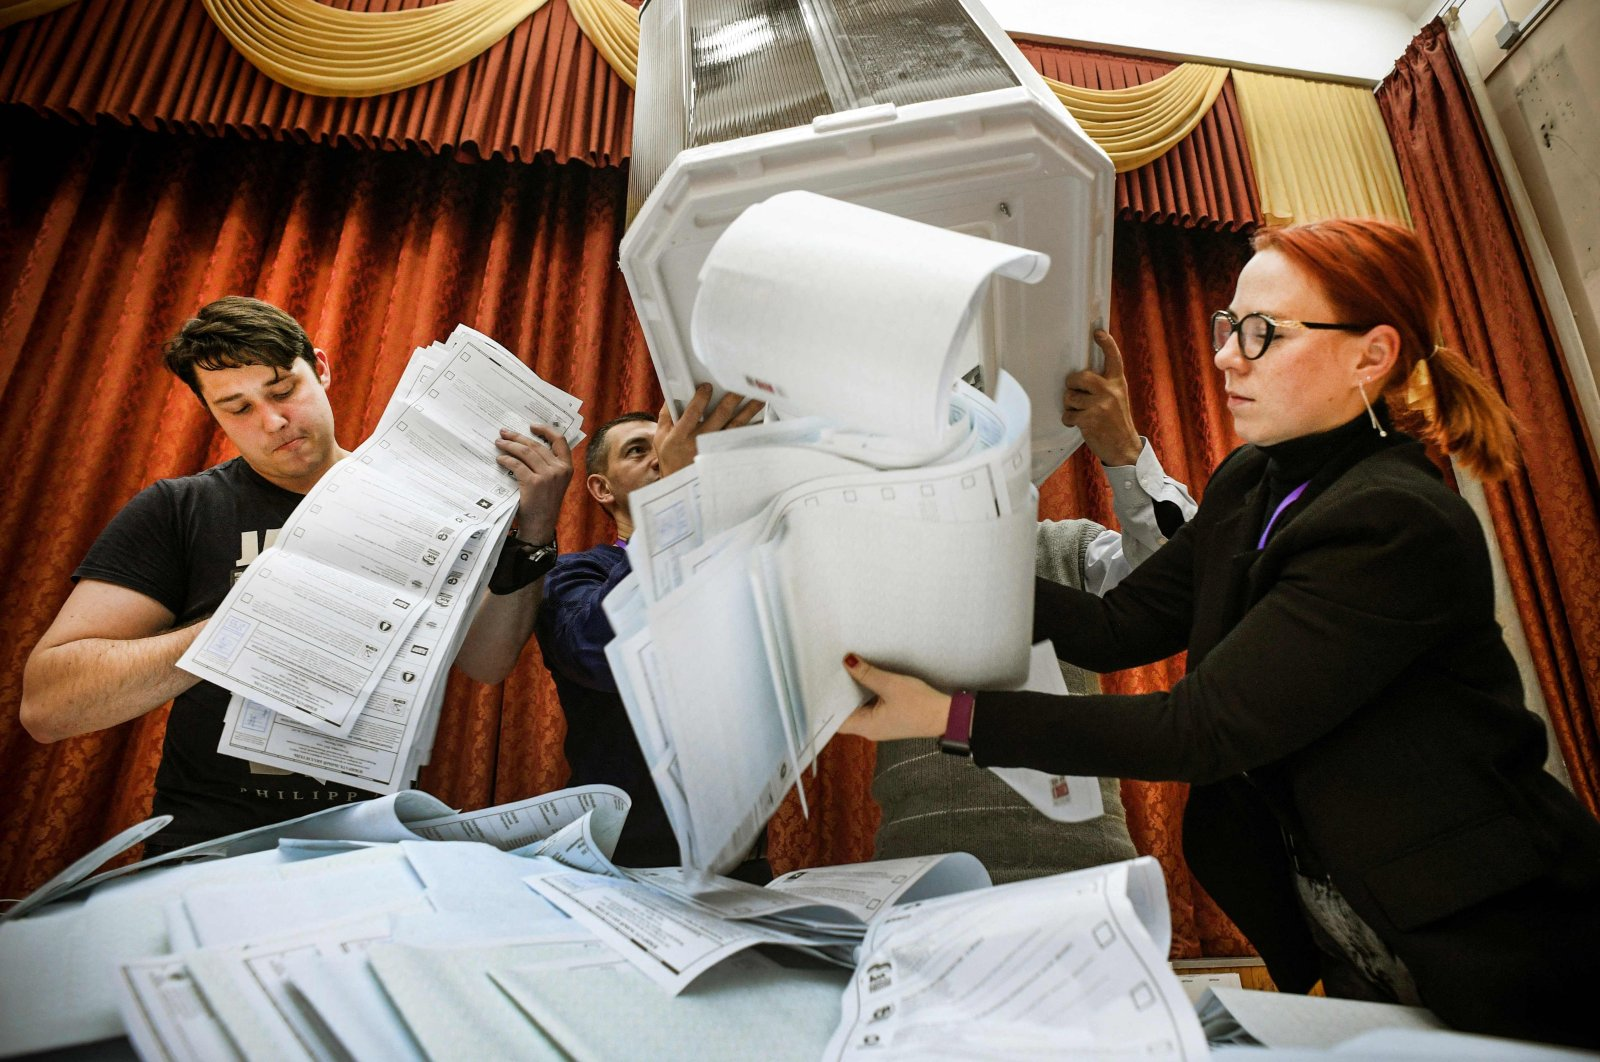 Members of a local electoral commission empty a ballot box at a polling station after the last day of the three-day parliamentary election, in Moscow, Russia, Sept. 19, 2021. (AFP Photo)